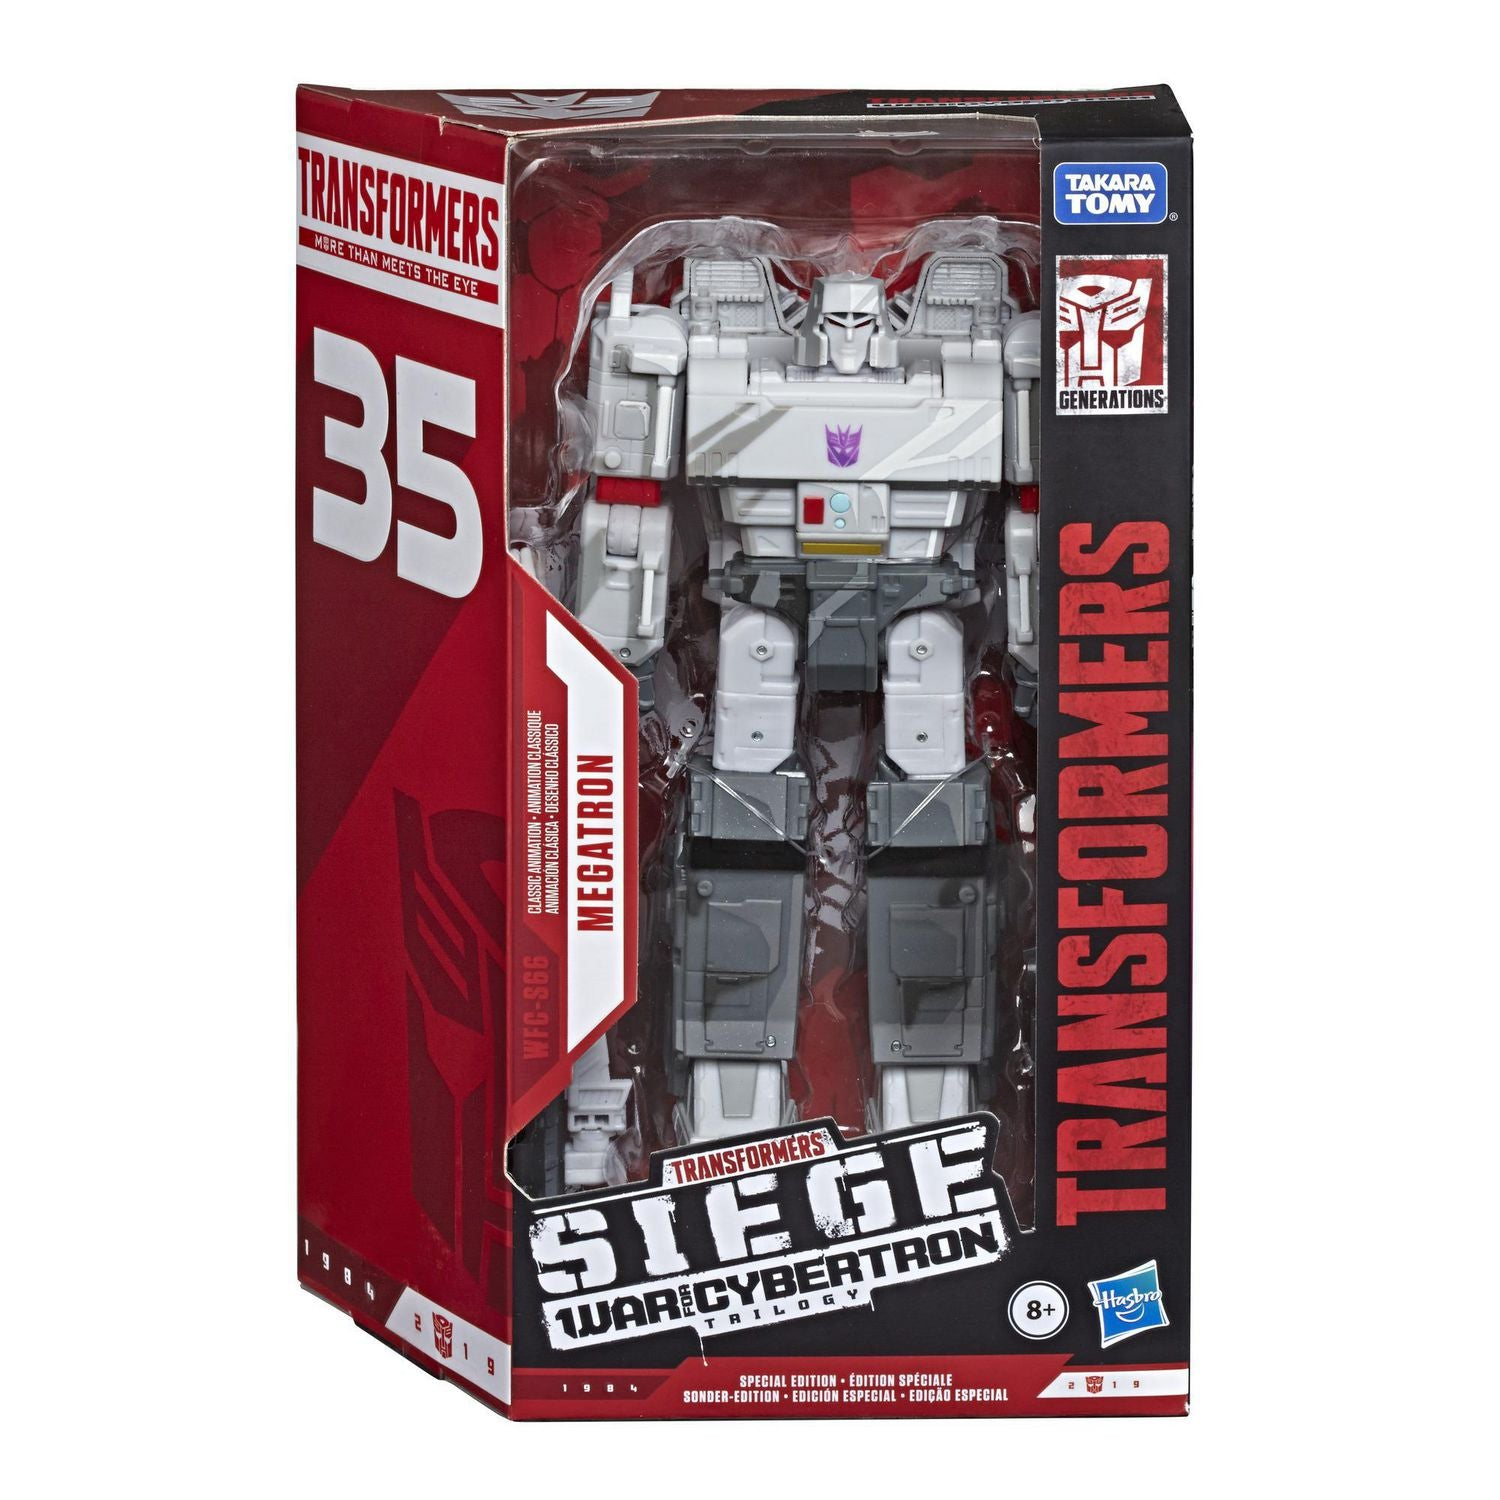 Transformers - War for Cybertron: SIEGE - Megatron 35th Anniversary Action Figure (WFC-S66)